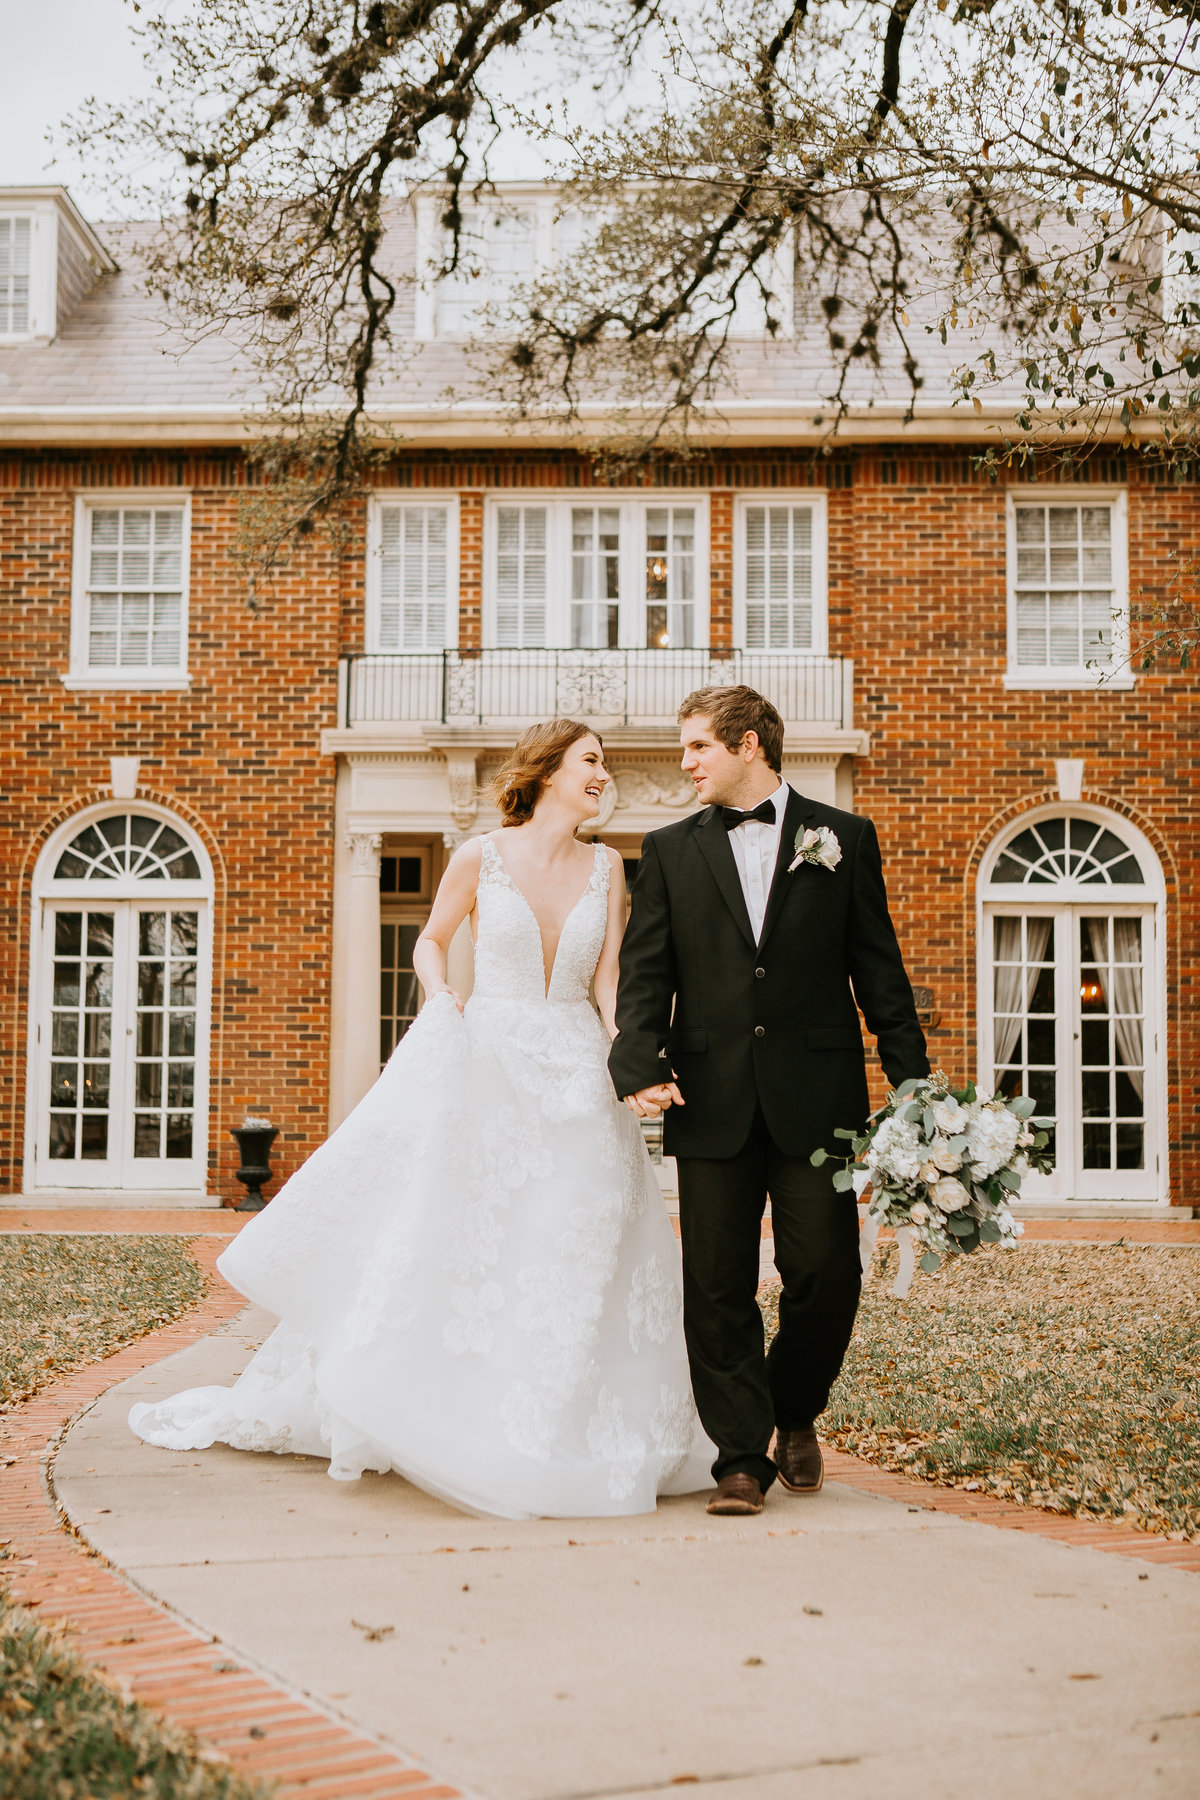 LynsieRaePhotography_2019 Styled Shoot_College Station-9